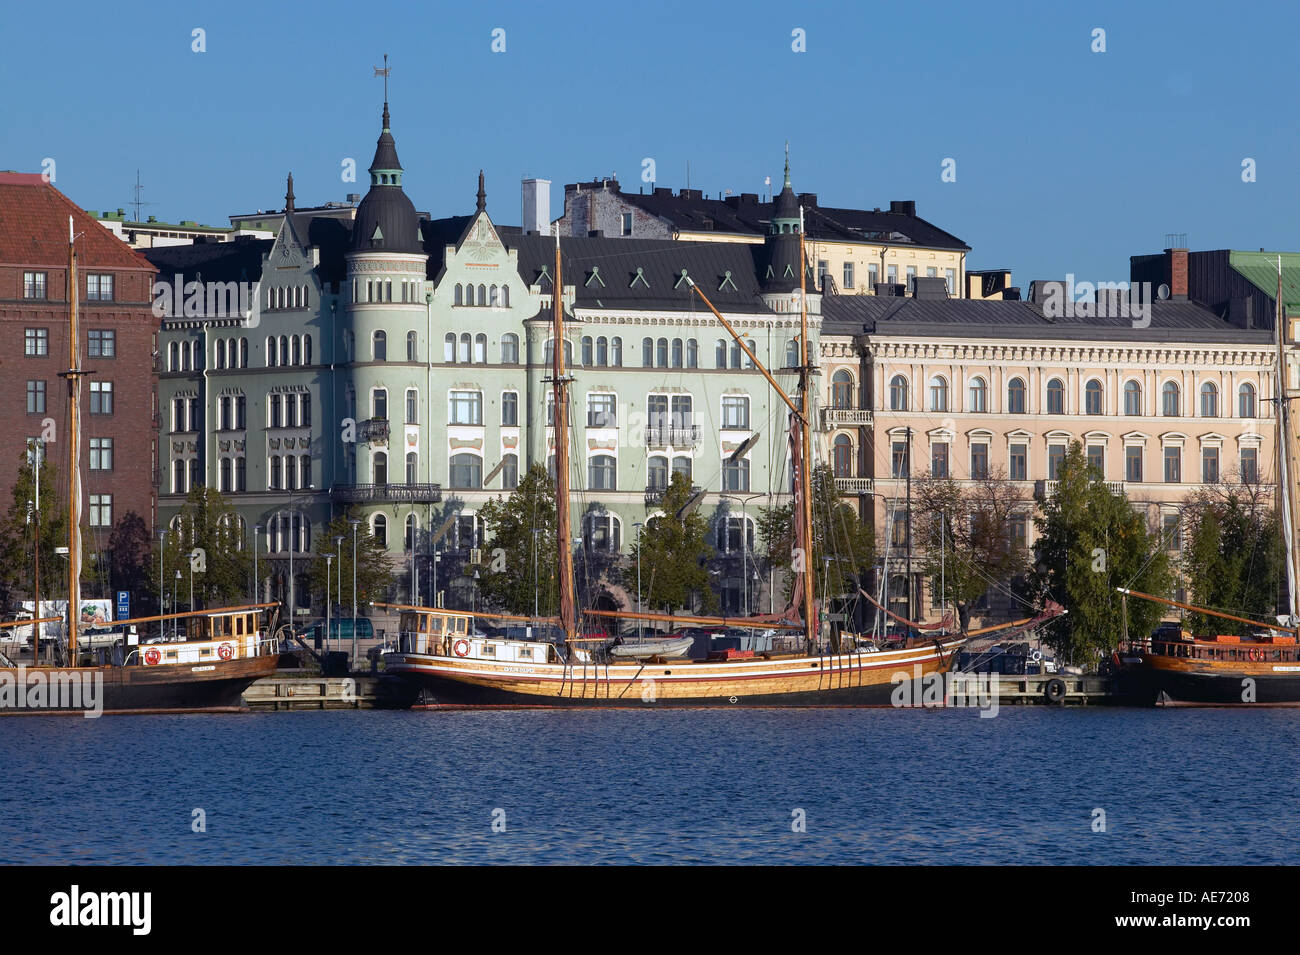 Finland Helsinki view to Pohjoisranta across North harbour with classic sailing ships - Stock Image